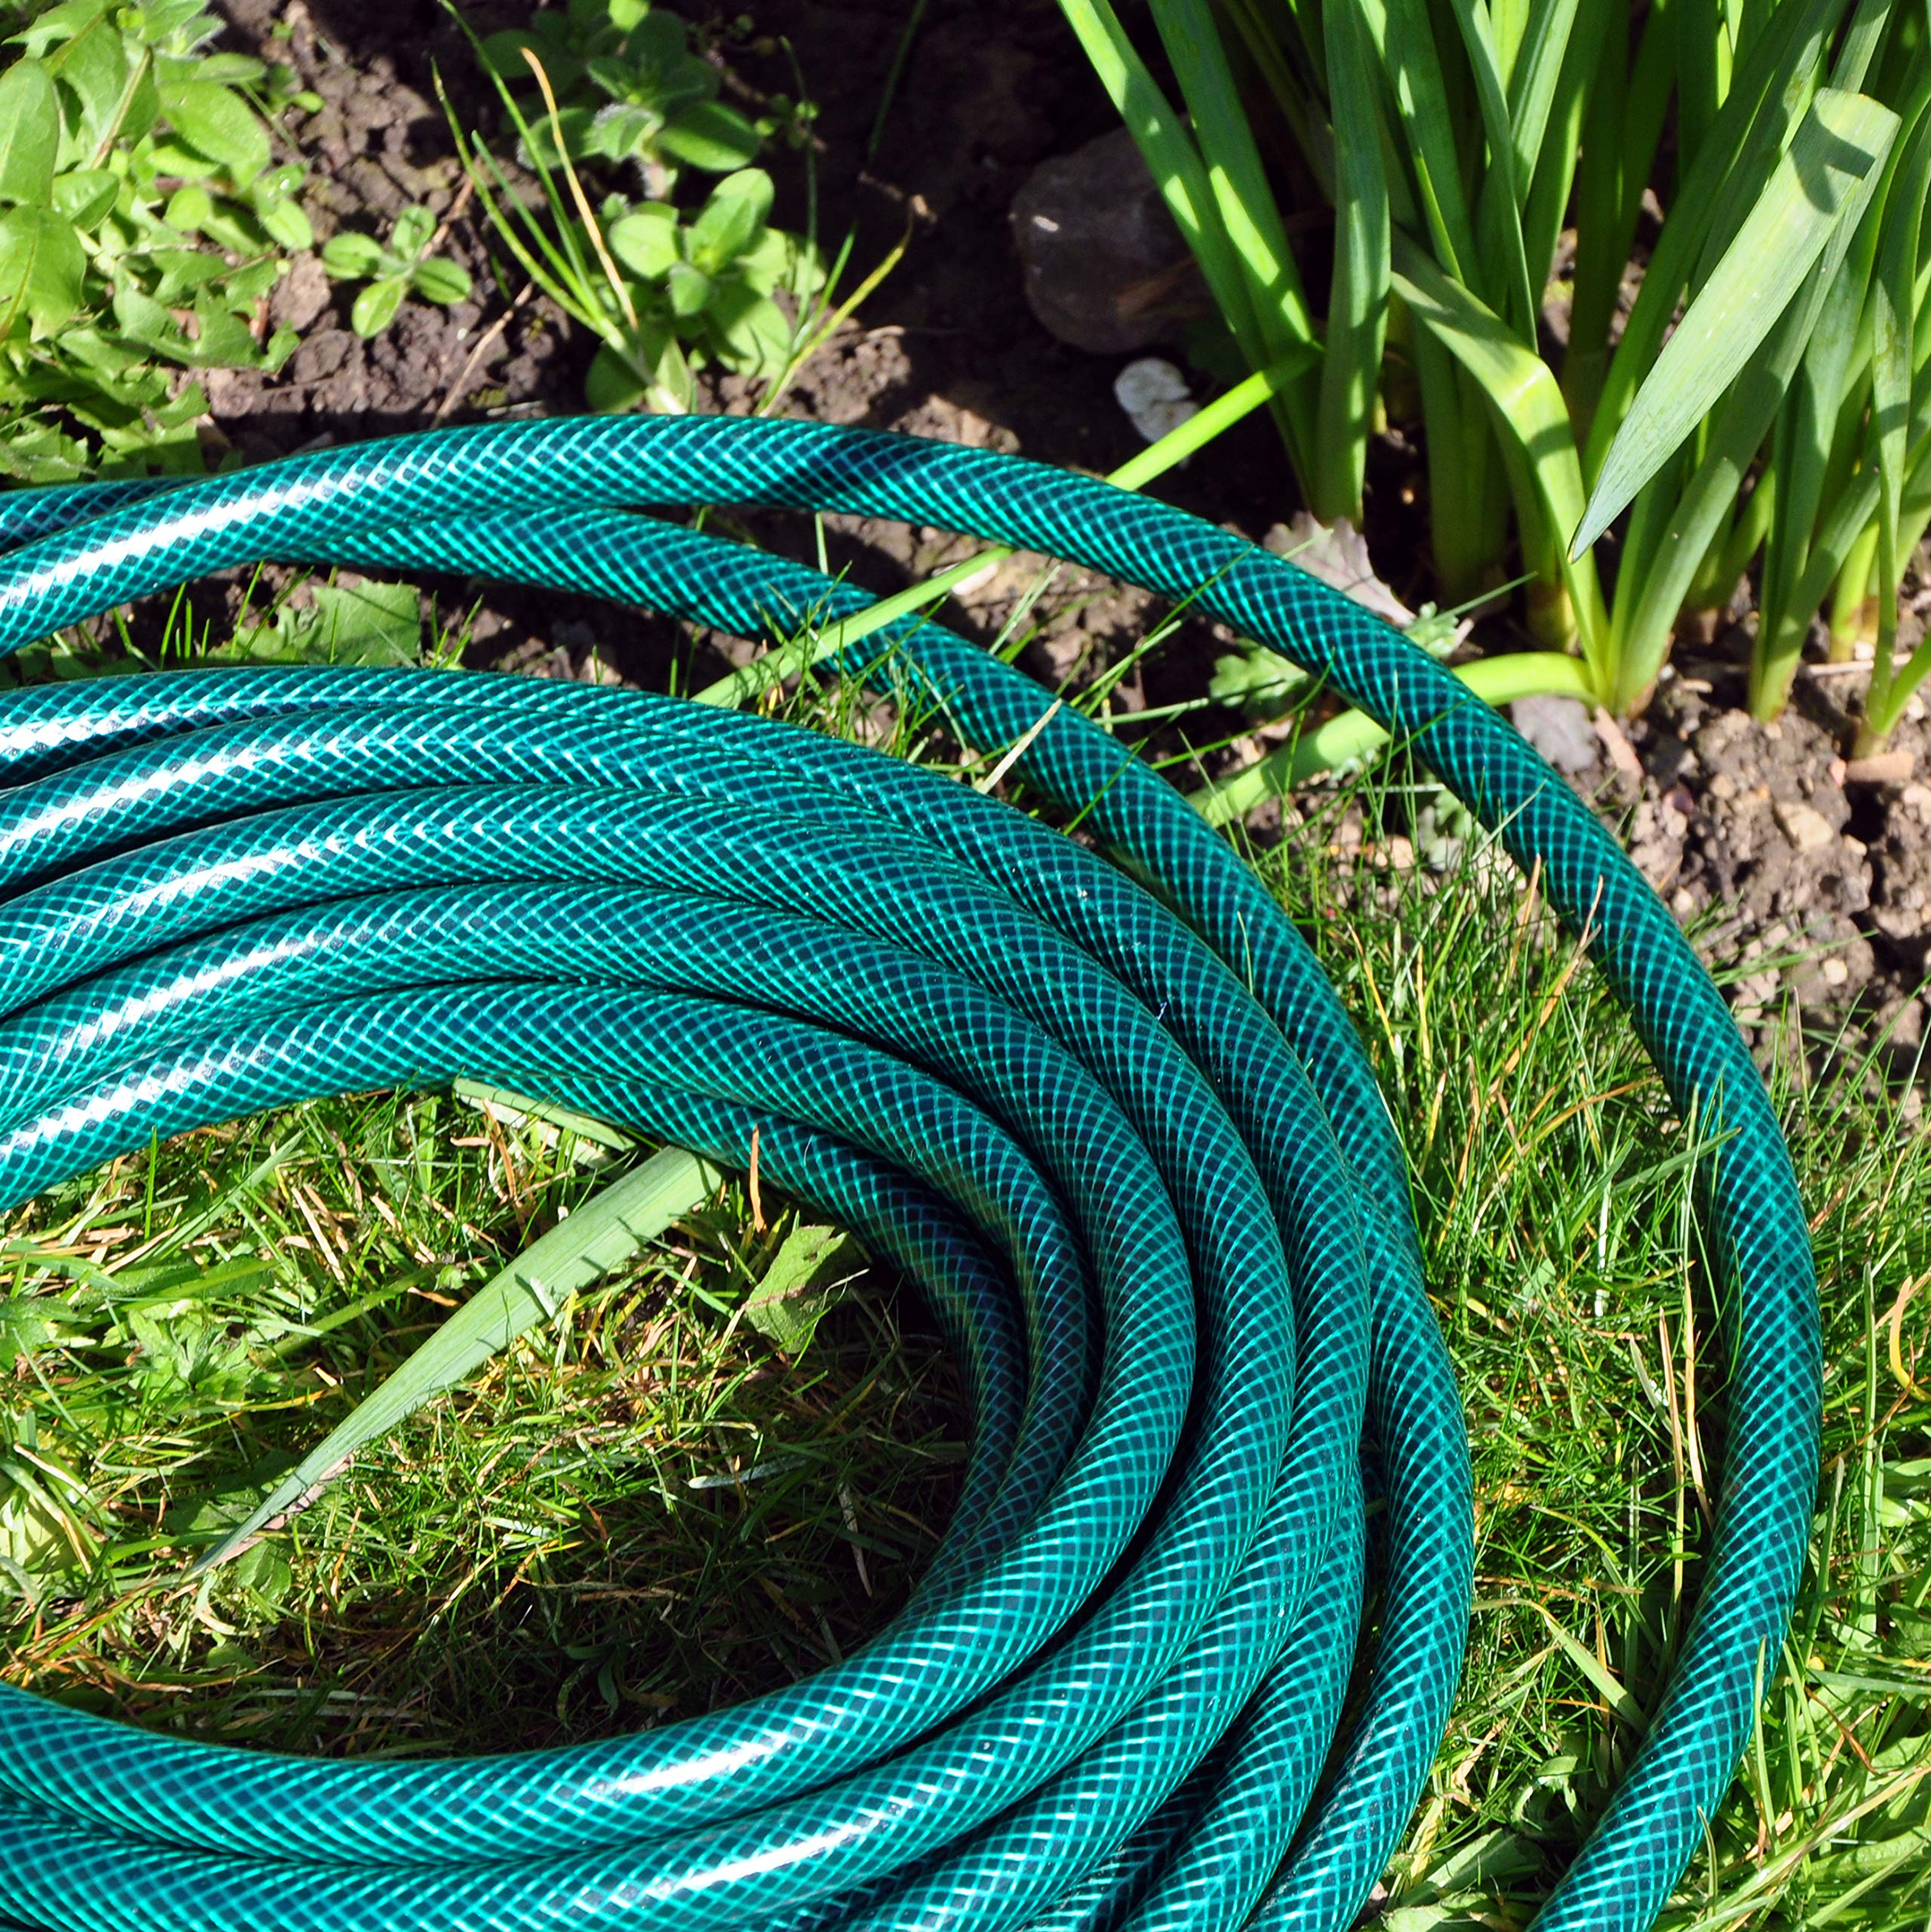 Worth Garden 5M Water Hose 1//2 Garden Hose and Spray Nozzle Set 3 Layer Lightweight and Durable Outdoor Hosepipe